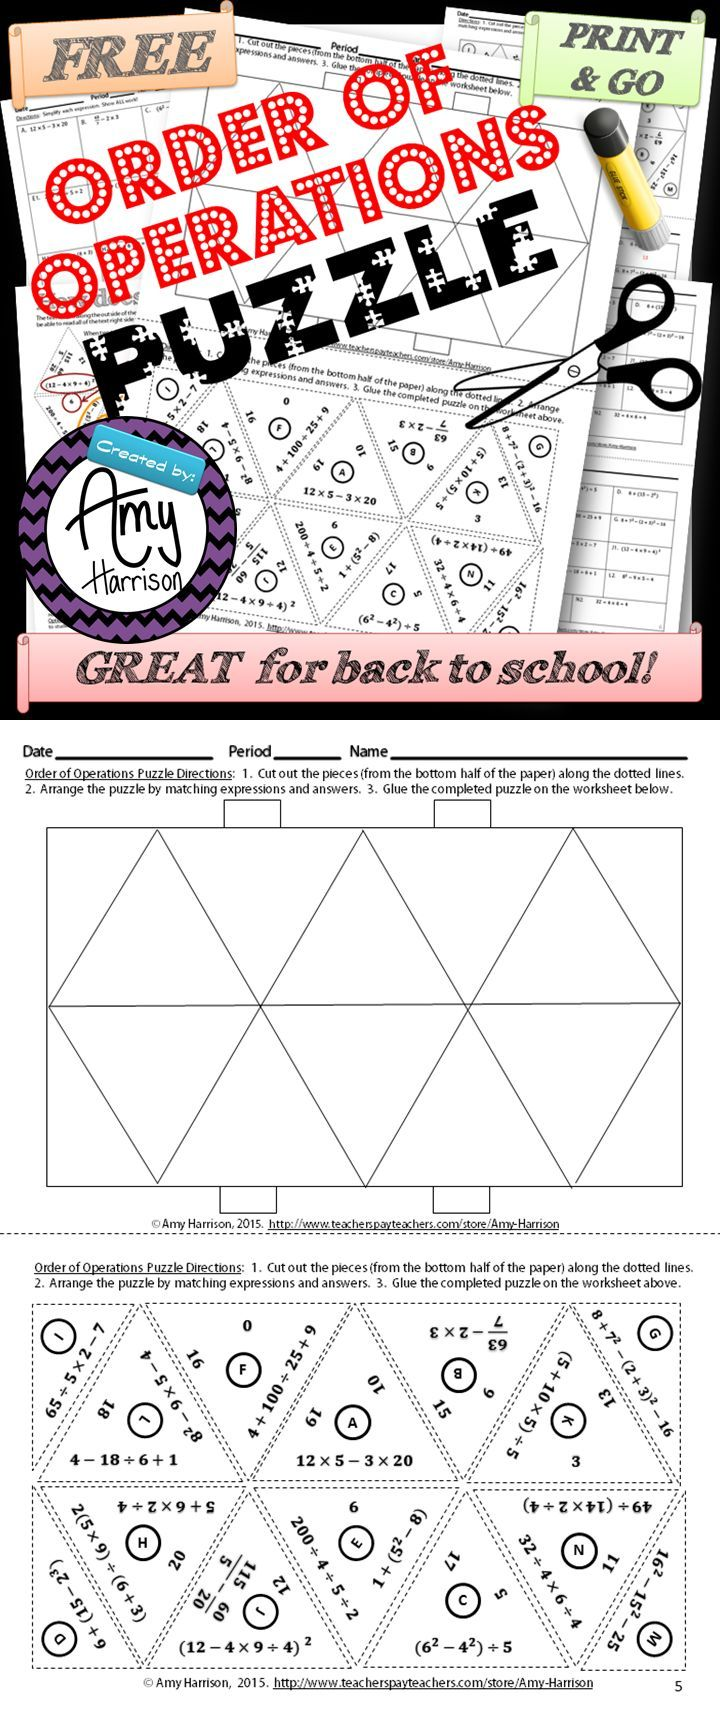 worksheet Math Puzzle Worksheets 1000 images about math puzzles on pinterest vocabulary try this free order of operations puzzle that is great for back to school in grades